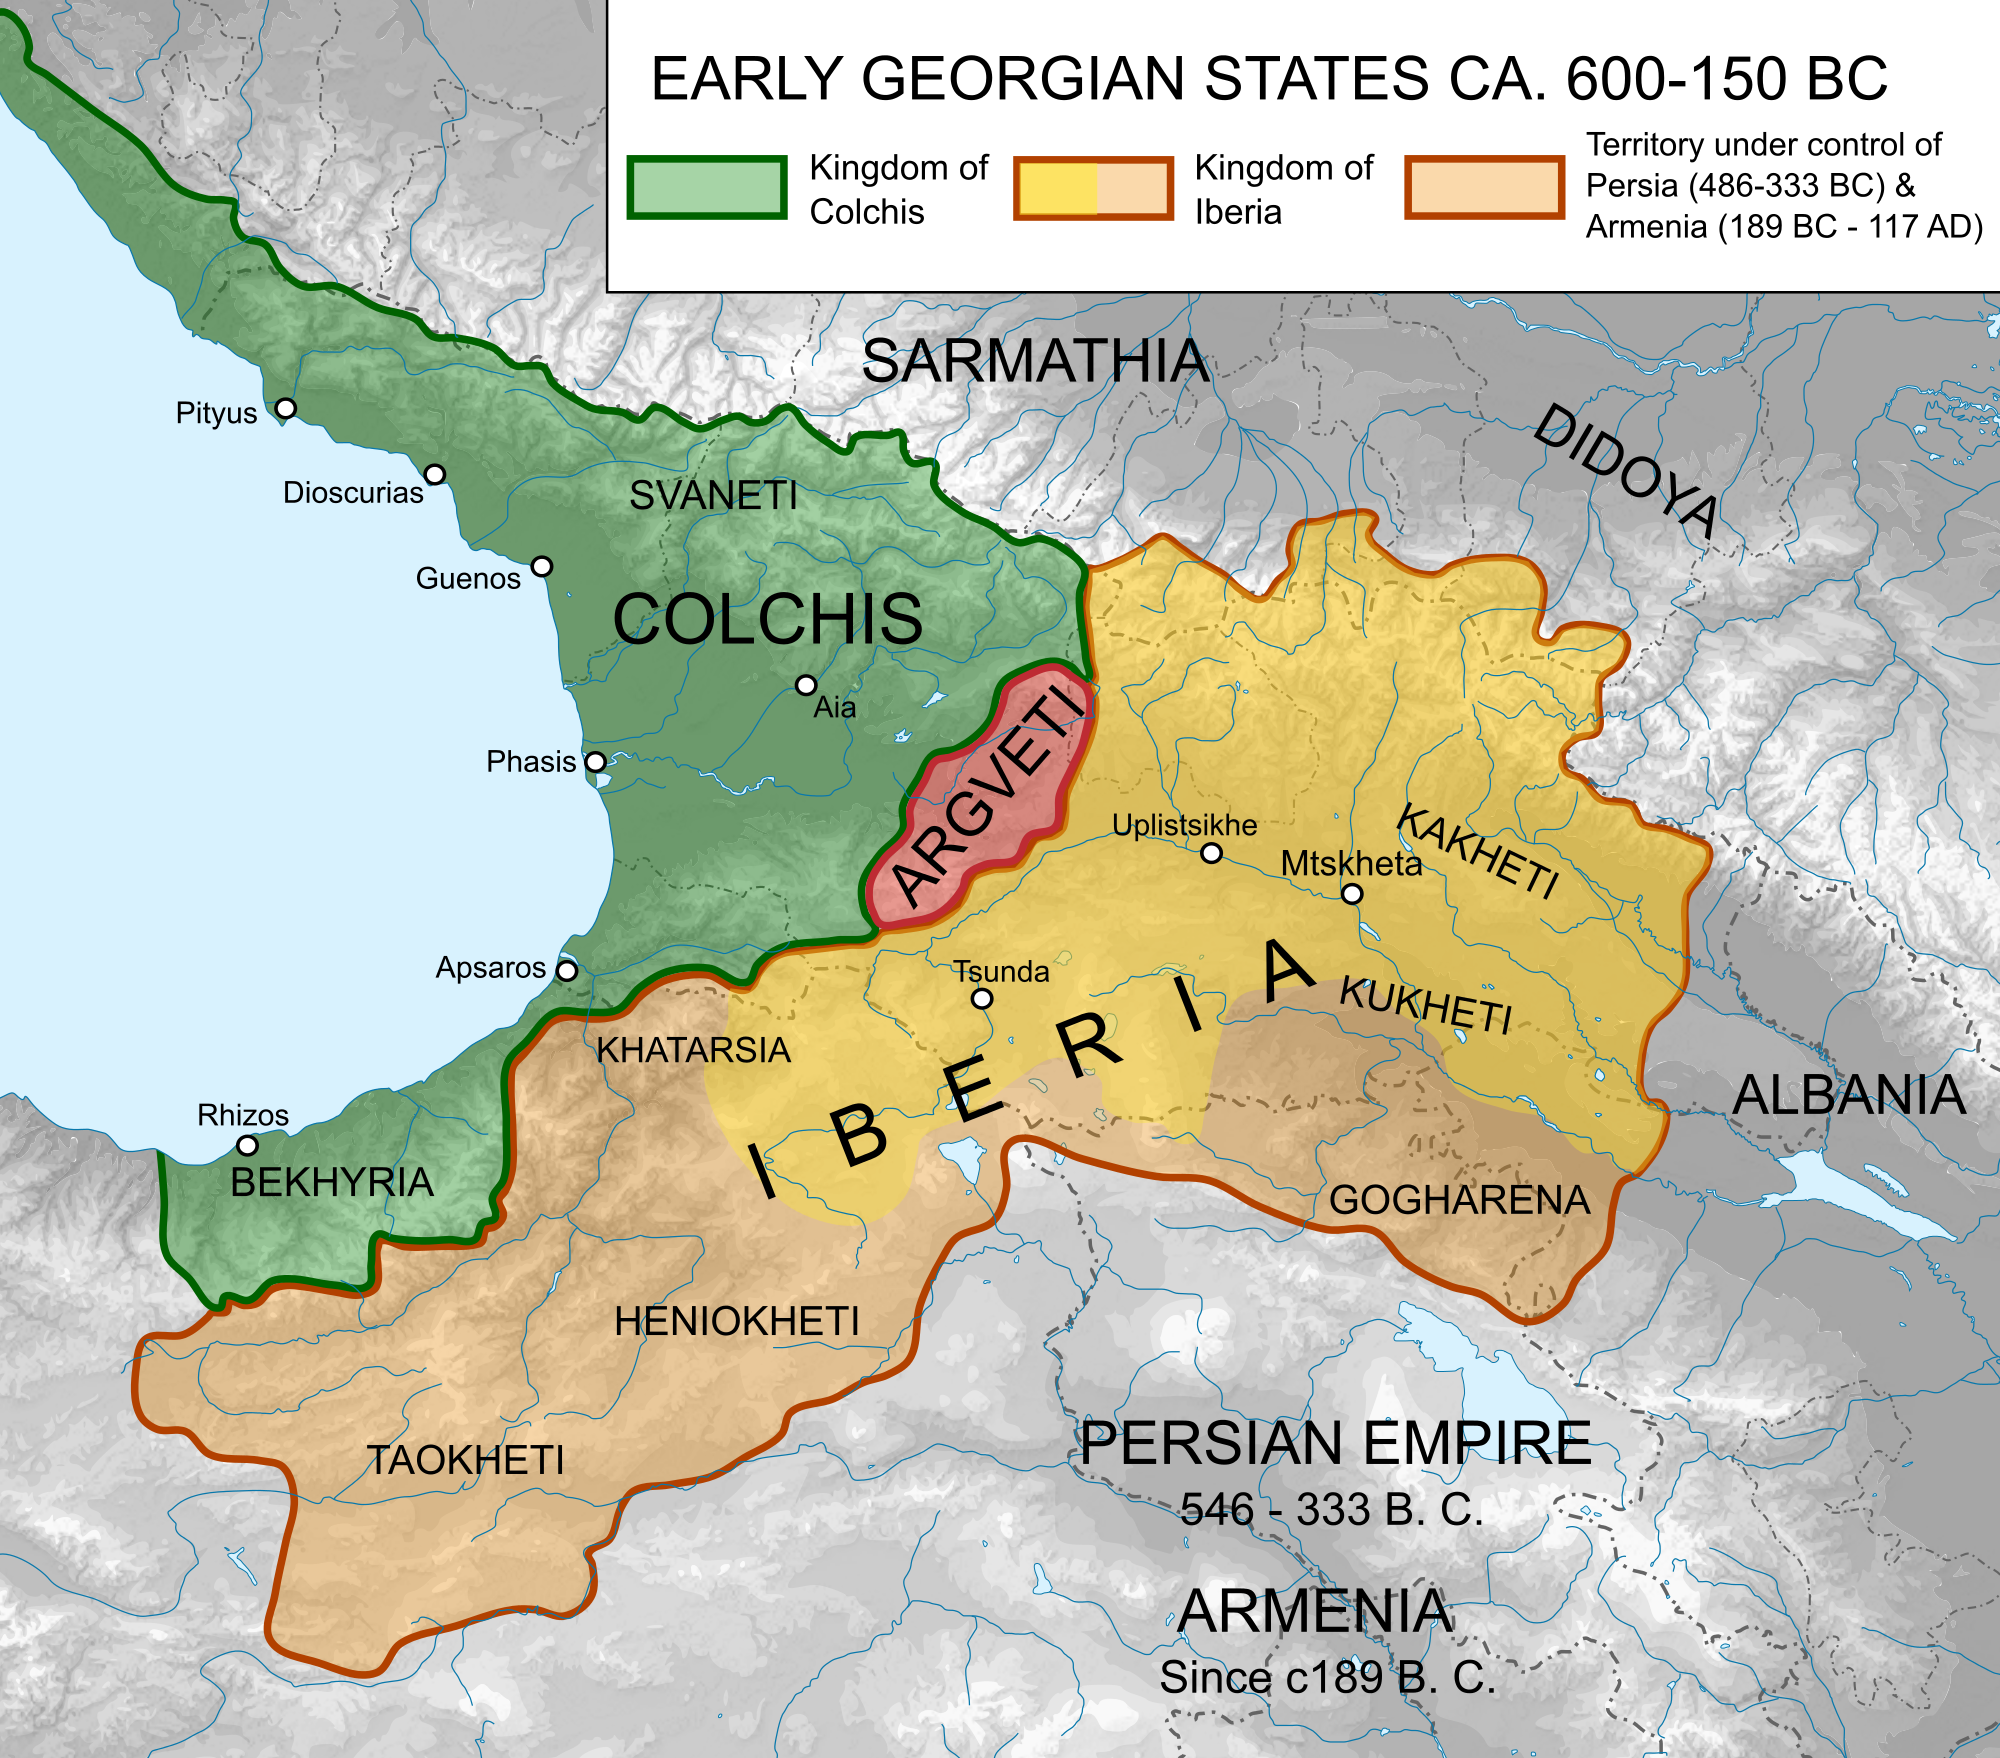 Map of ancient georgian states 600 150 bce illustration map of ancient georgian states gumiabroncs Choice Image